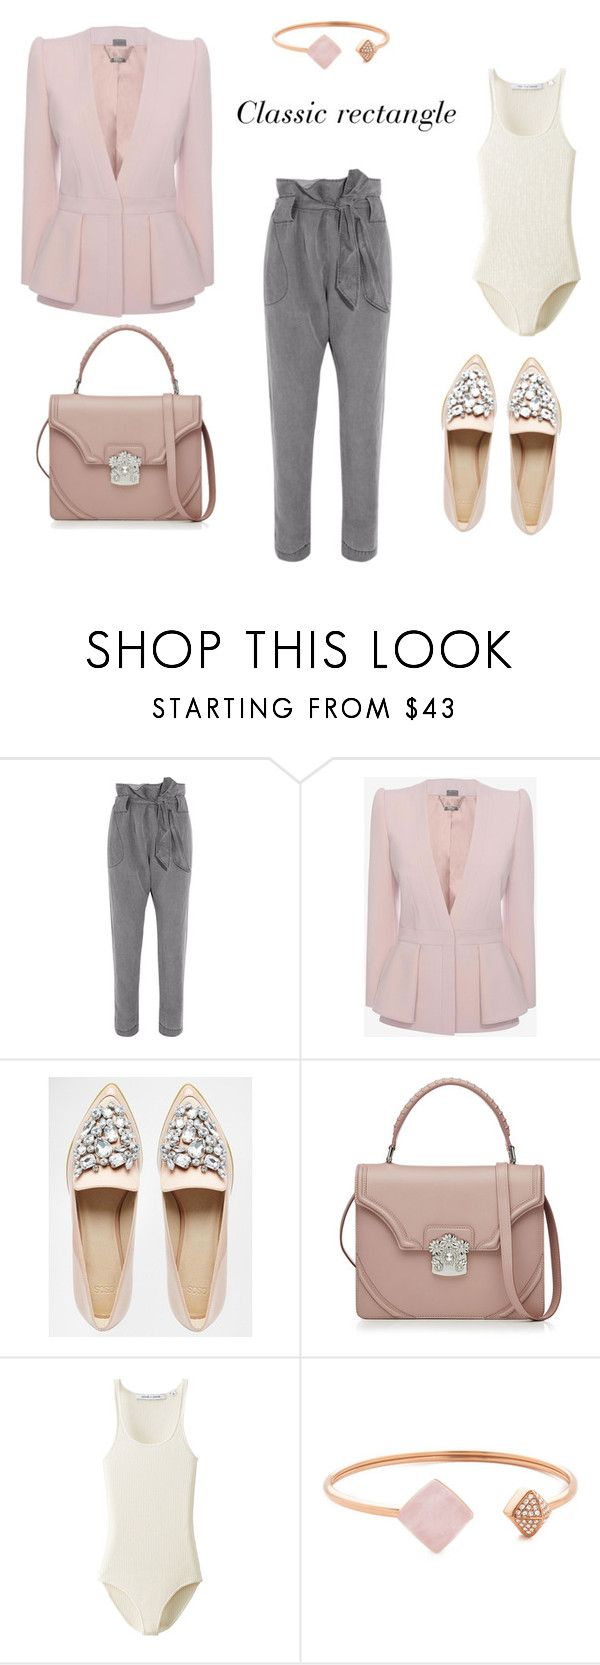 """Classic personality styling for rectangle body shape"" by monicazelin ❤ liked on Polyvore featuring Vivienne Westwood Anglomania, Alexander McQueen, ASOS, Uniqlo and Michael Kors"